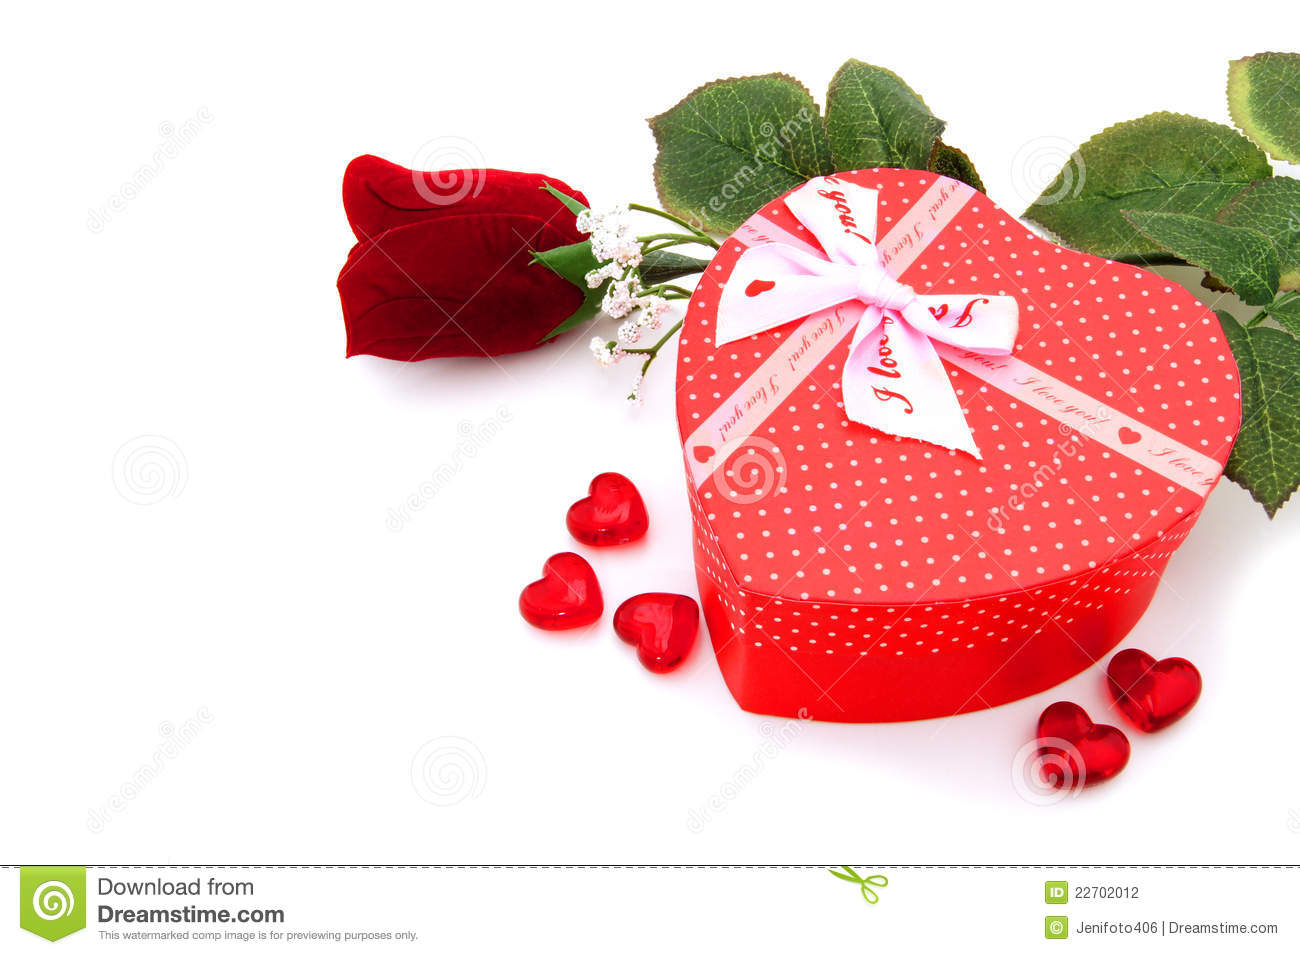 valentine day gift delivery brisbane